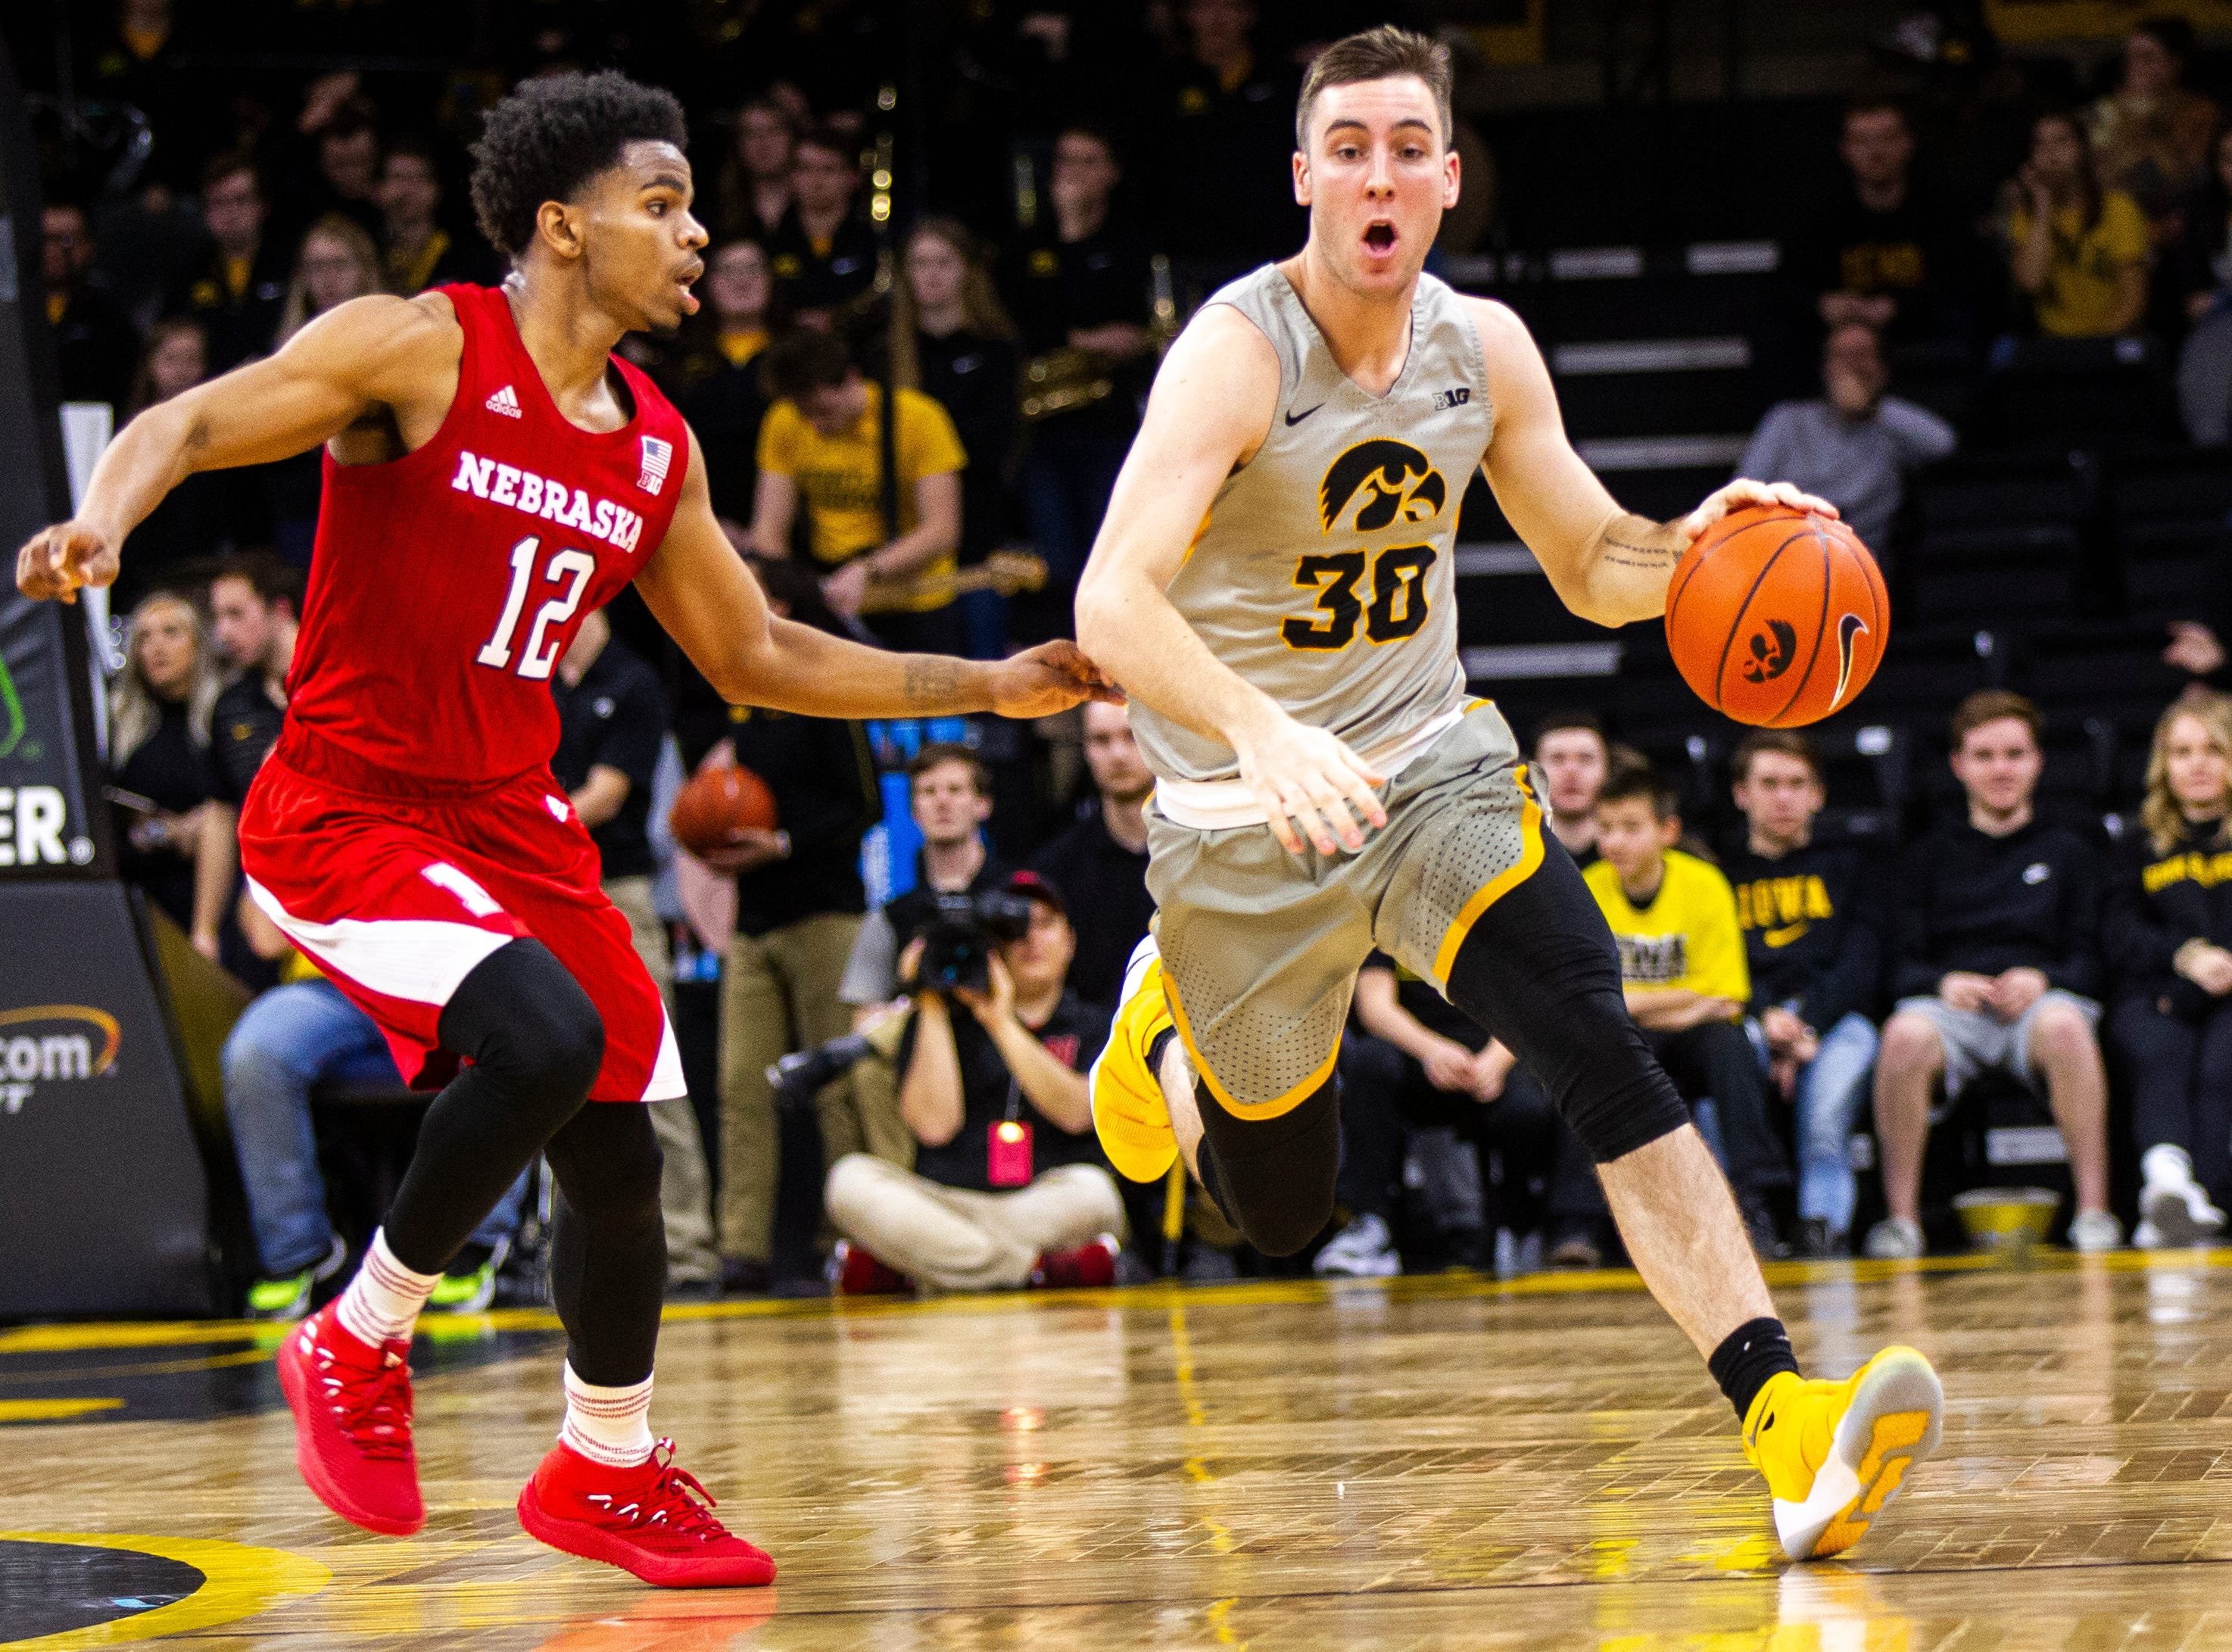 Iowa guard Connor McCaffery (30) takes the ball up court while being covered by Nebraska guard Thomas Allen (12) during a NCAA Big Ten Conference men's basketball game on Sunday, Jan. 6, 2019, at the Carver-Hawkeye Arena in Iowa City, Iowa.